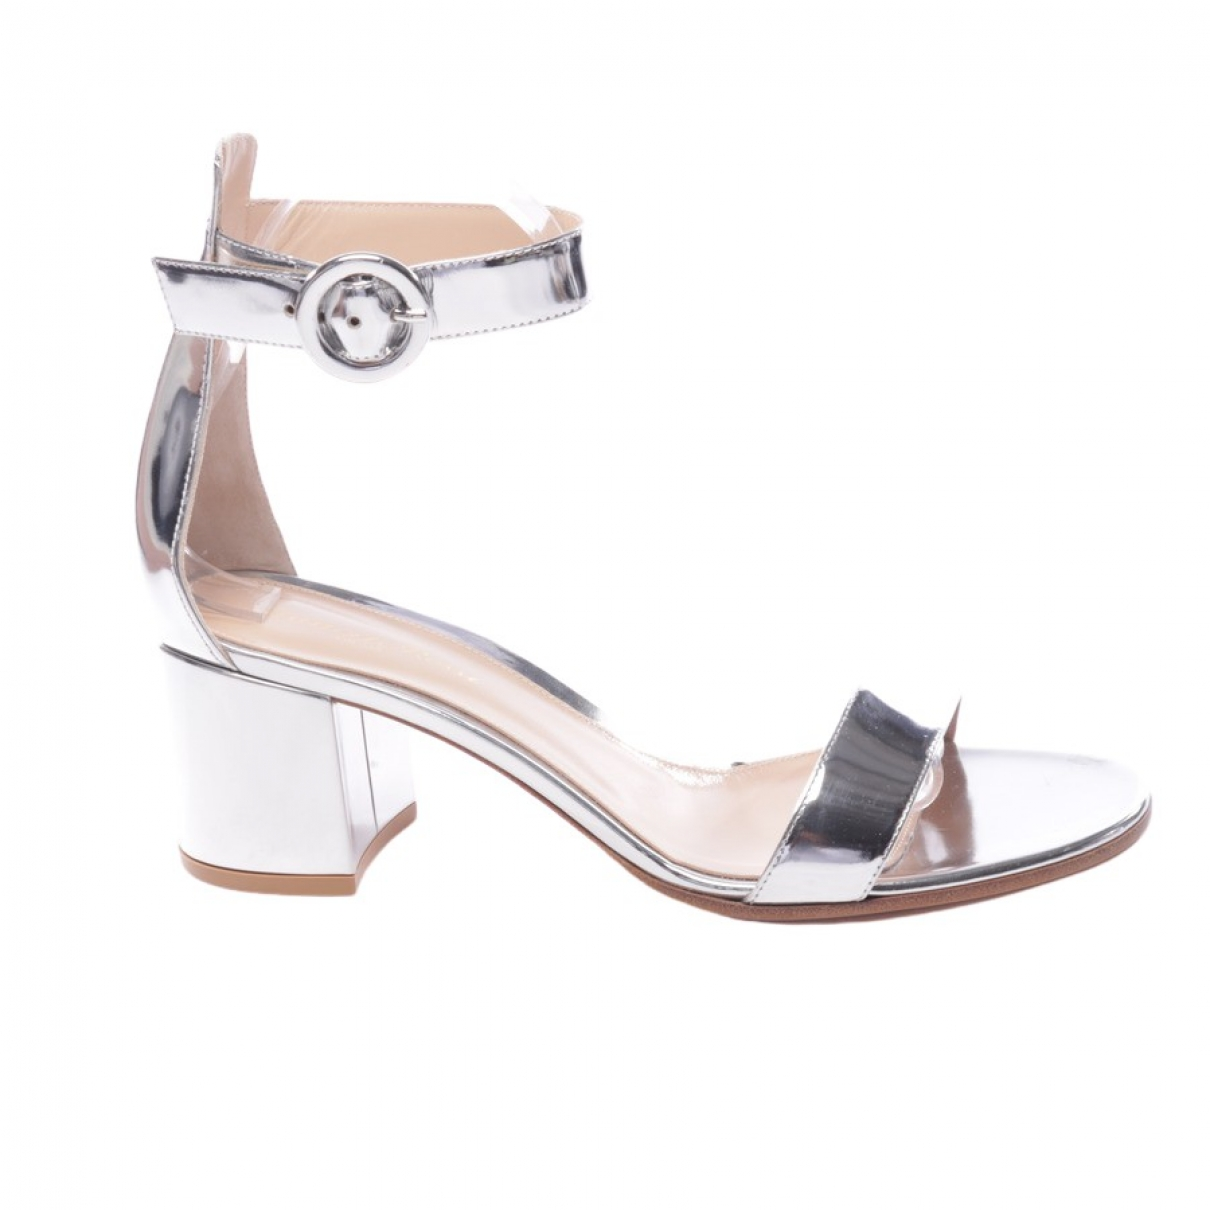 Gianvito Rossi Versilia Metallic Leather Sandals for Women 40 EU